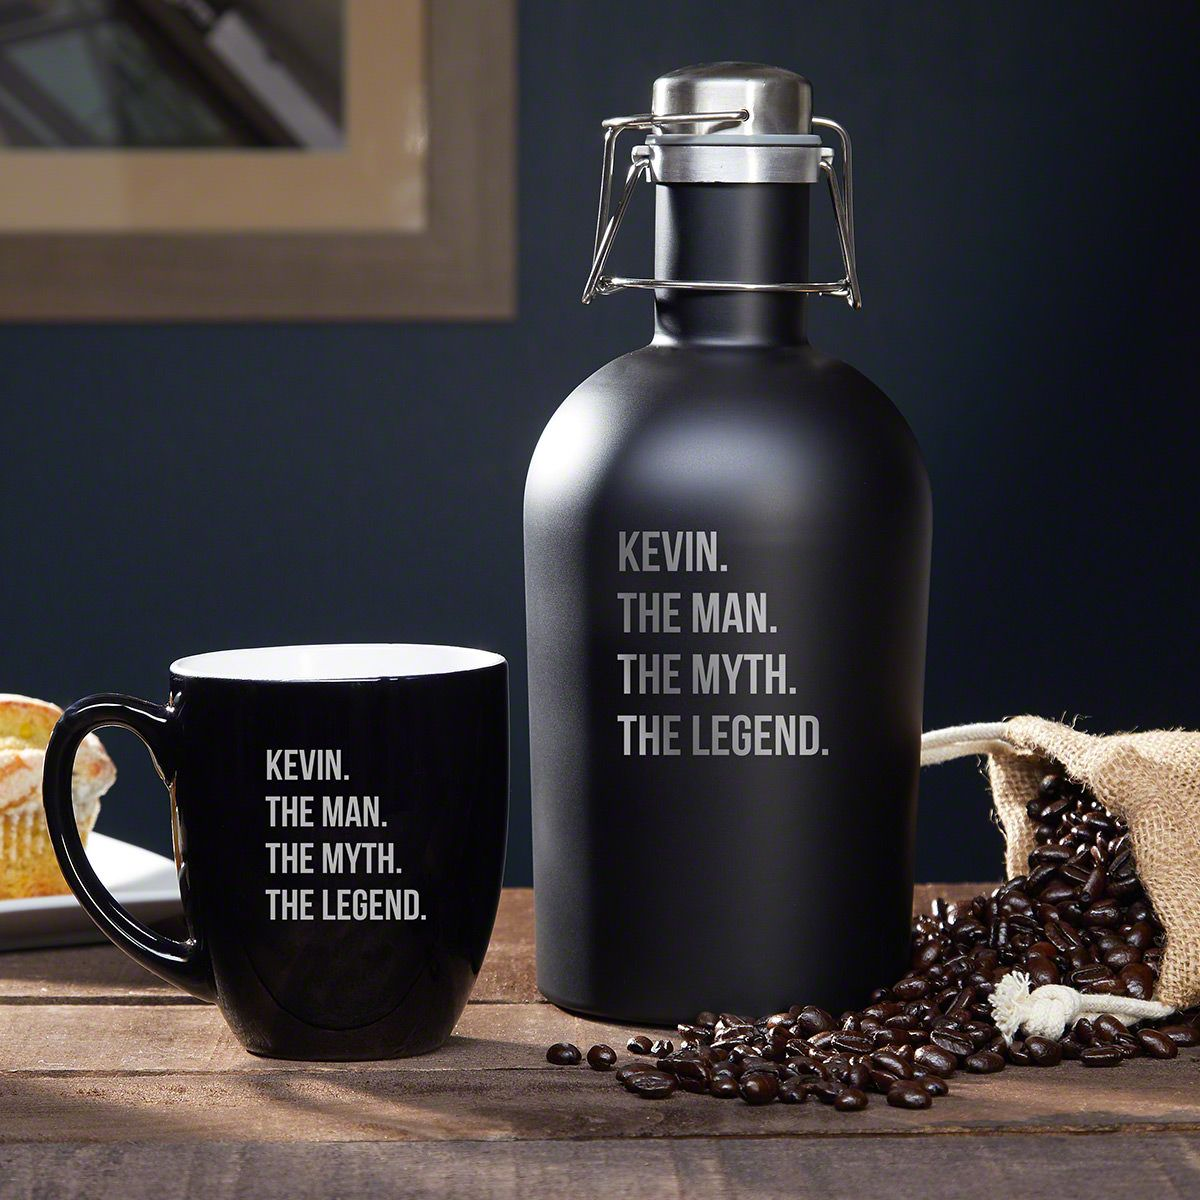 Man Myth Legend Custom Stainless Steel Coffee Carafe Mug Set